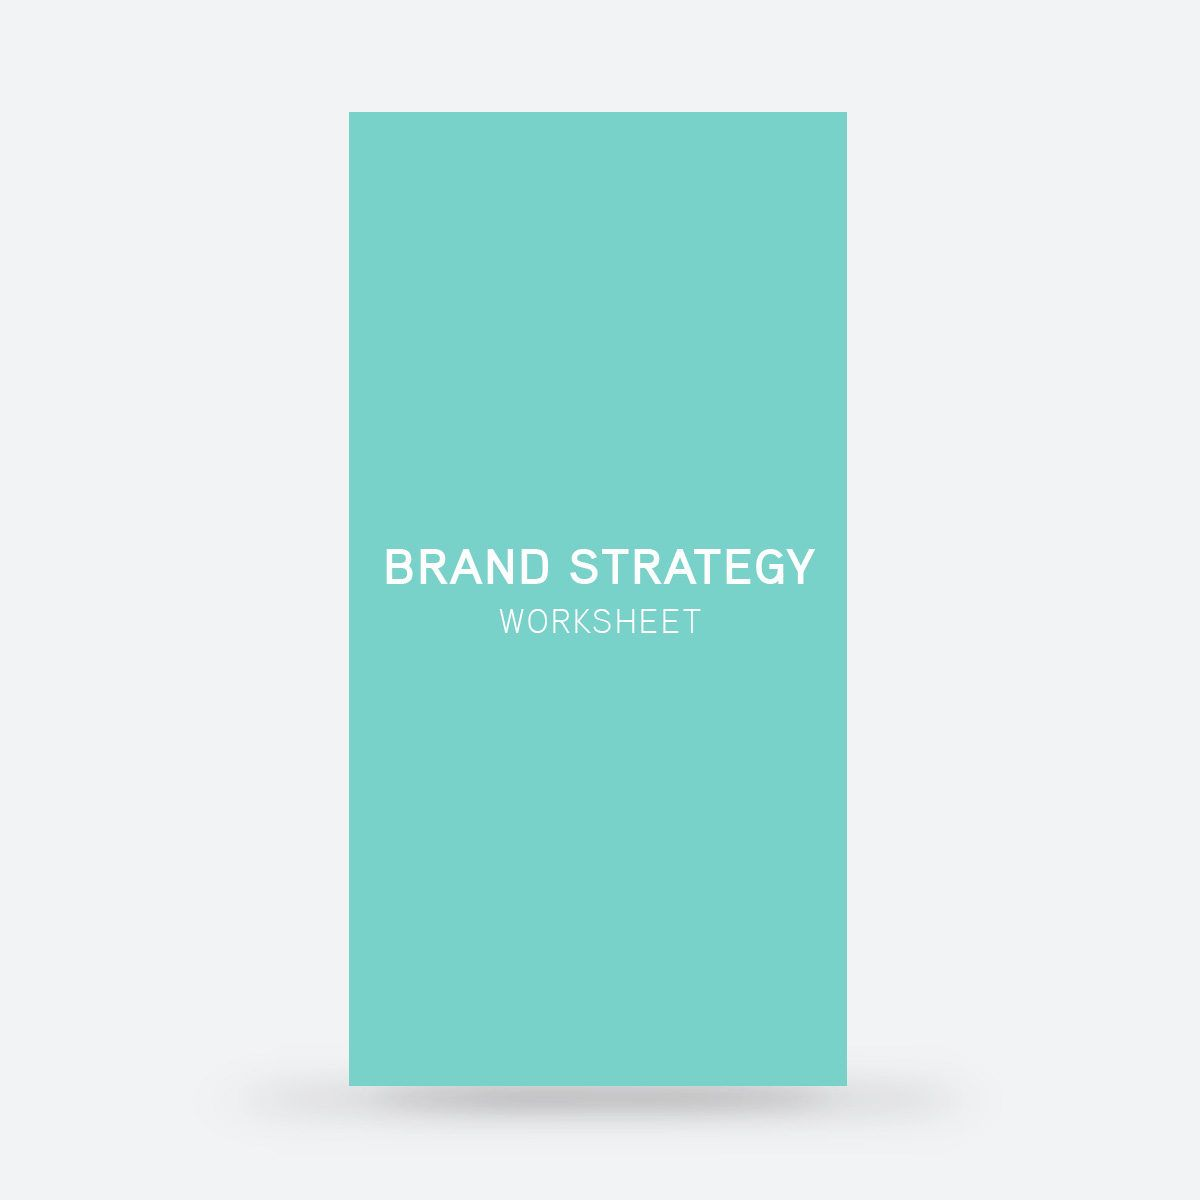 Brand Strategy Worksheet